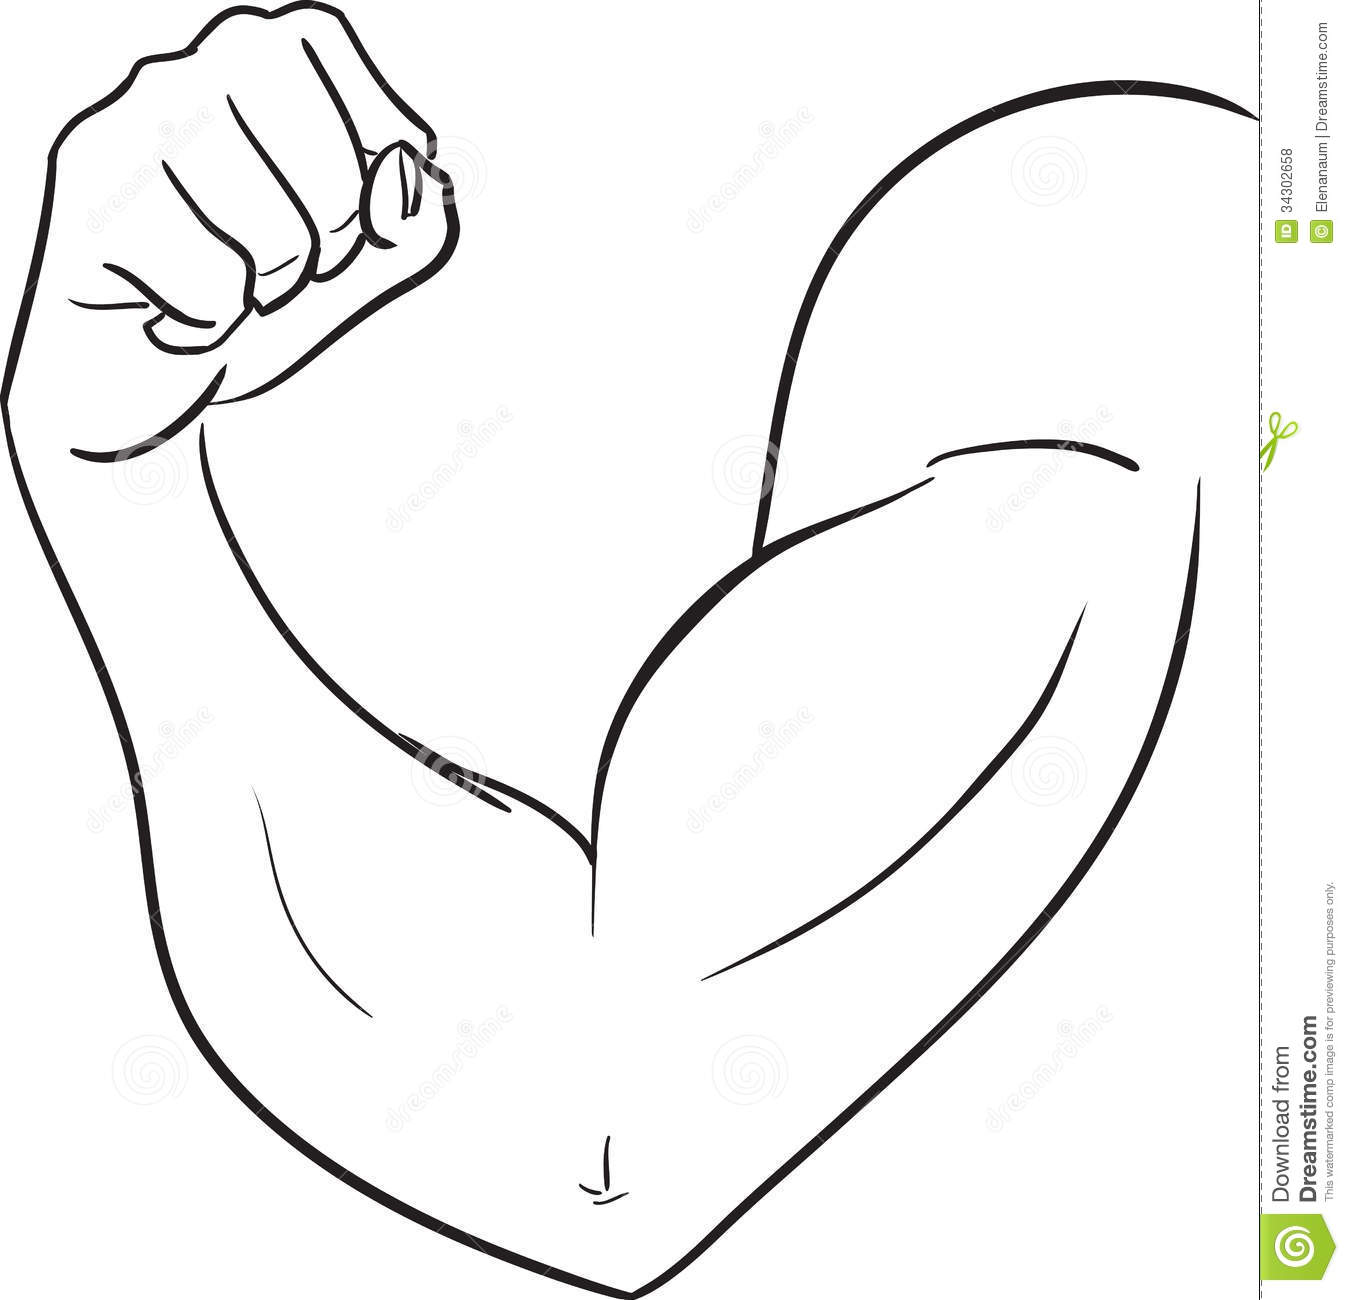 clip royalty free download Muscle elbows transparent free. Arm clipart black and white